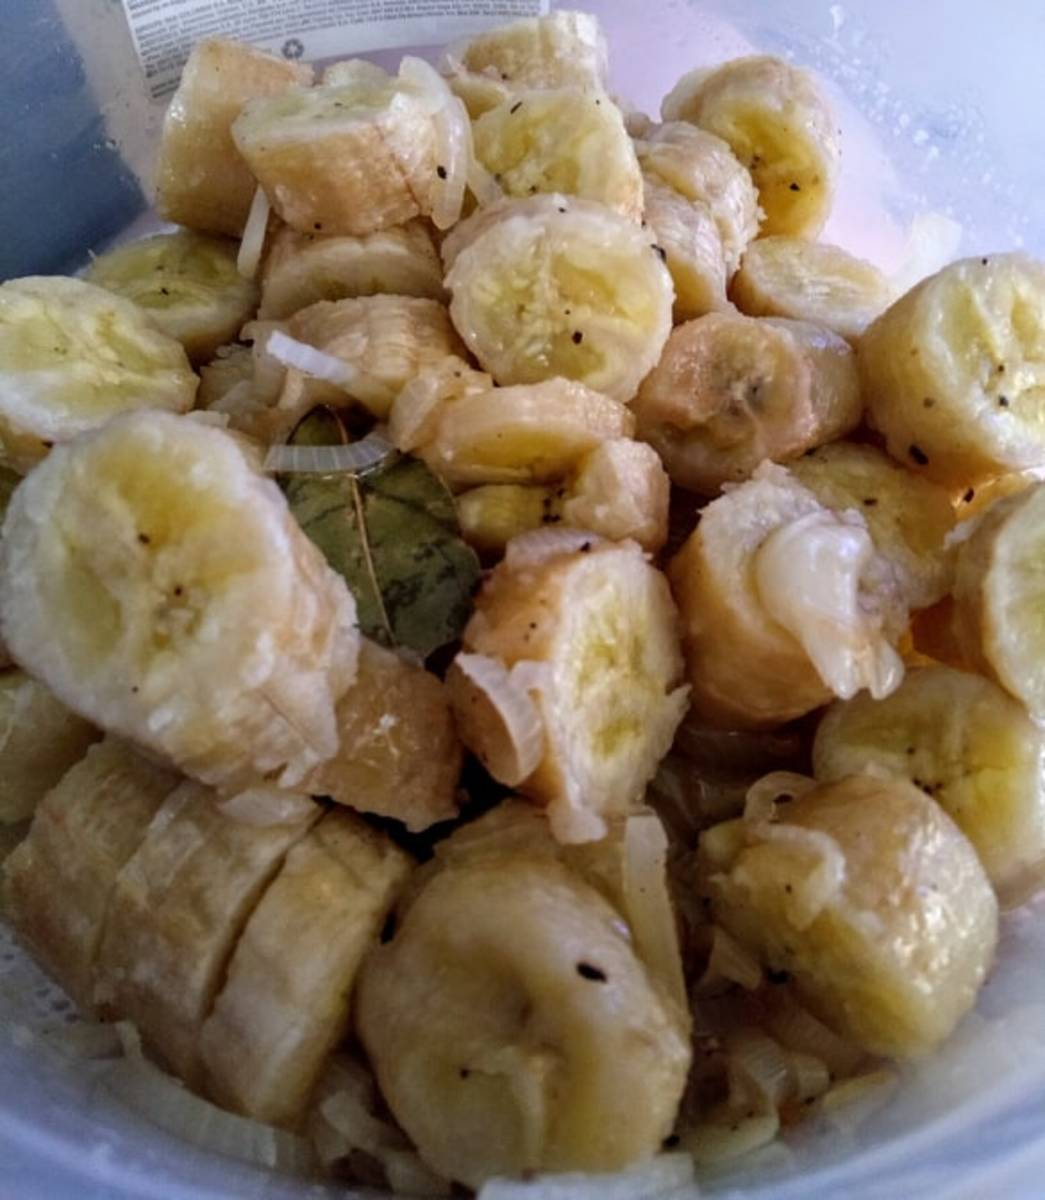 IslandBites: Pickled Green Bananas (Guineitos en escabeche)